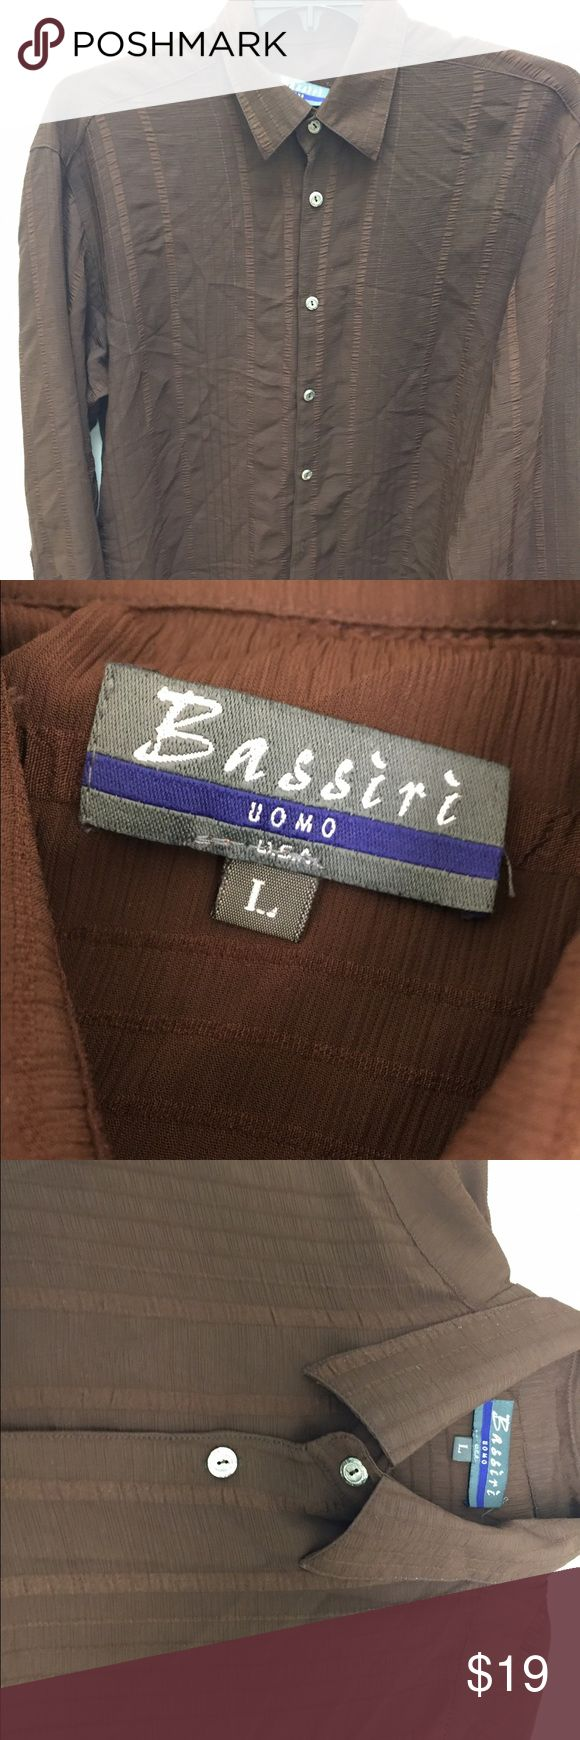 BASSIRI UOMO light weight brown dress shirt size L This is a nice light airy type of fabric RICH BROWN color closest to color of second photo. But darker It is in great condition and is unique look at photos I tried to capture the material looksize L not Versace brand is Bassiri Uomo selling cheap Versace Shirts Dress Shirts